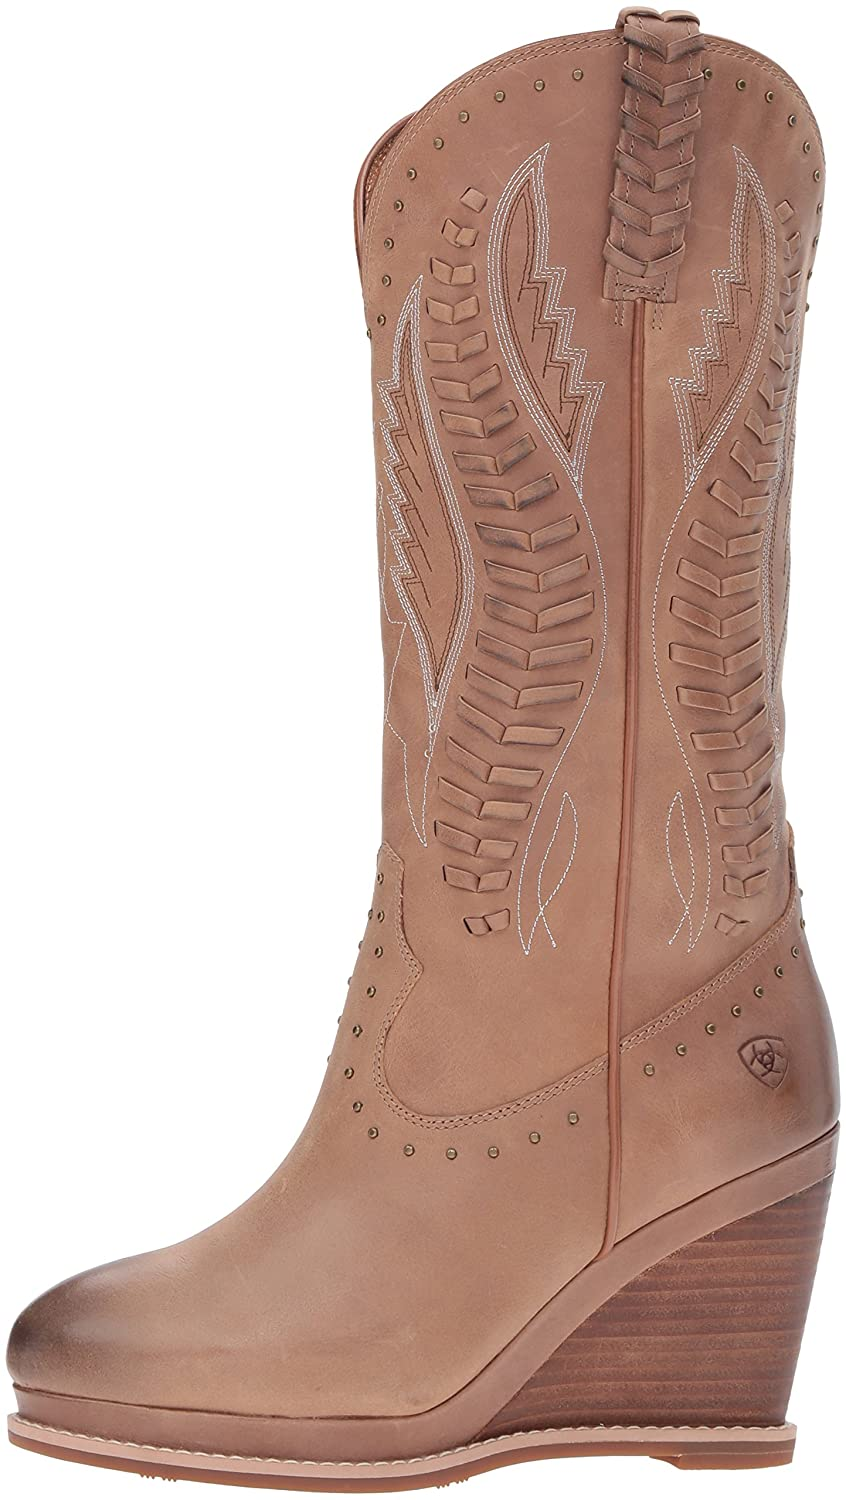 Ariat Women's Nashville Western B(M) Fashion Boot B01BPW7NW4 9 B(M) Western US|Burnt Sugar 8722c2